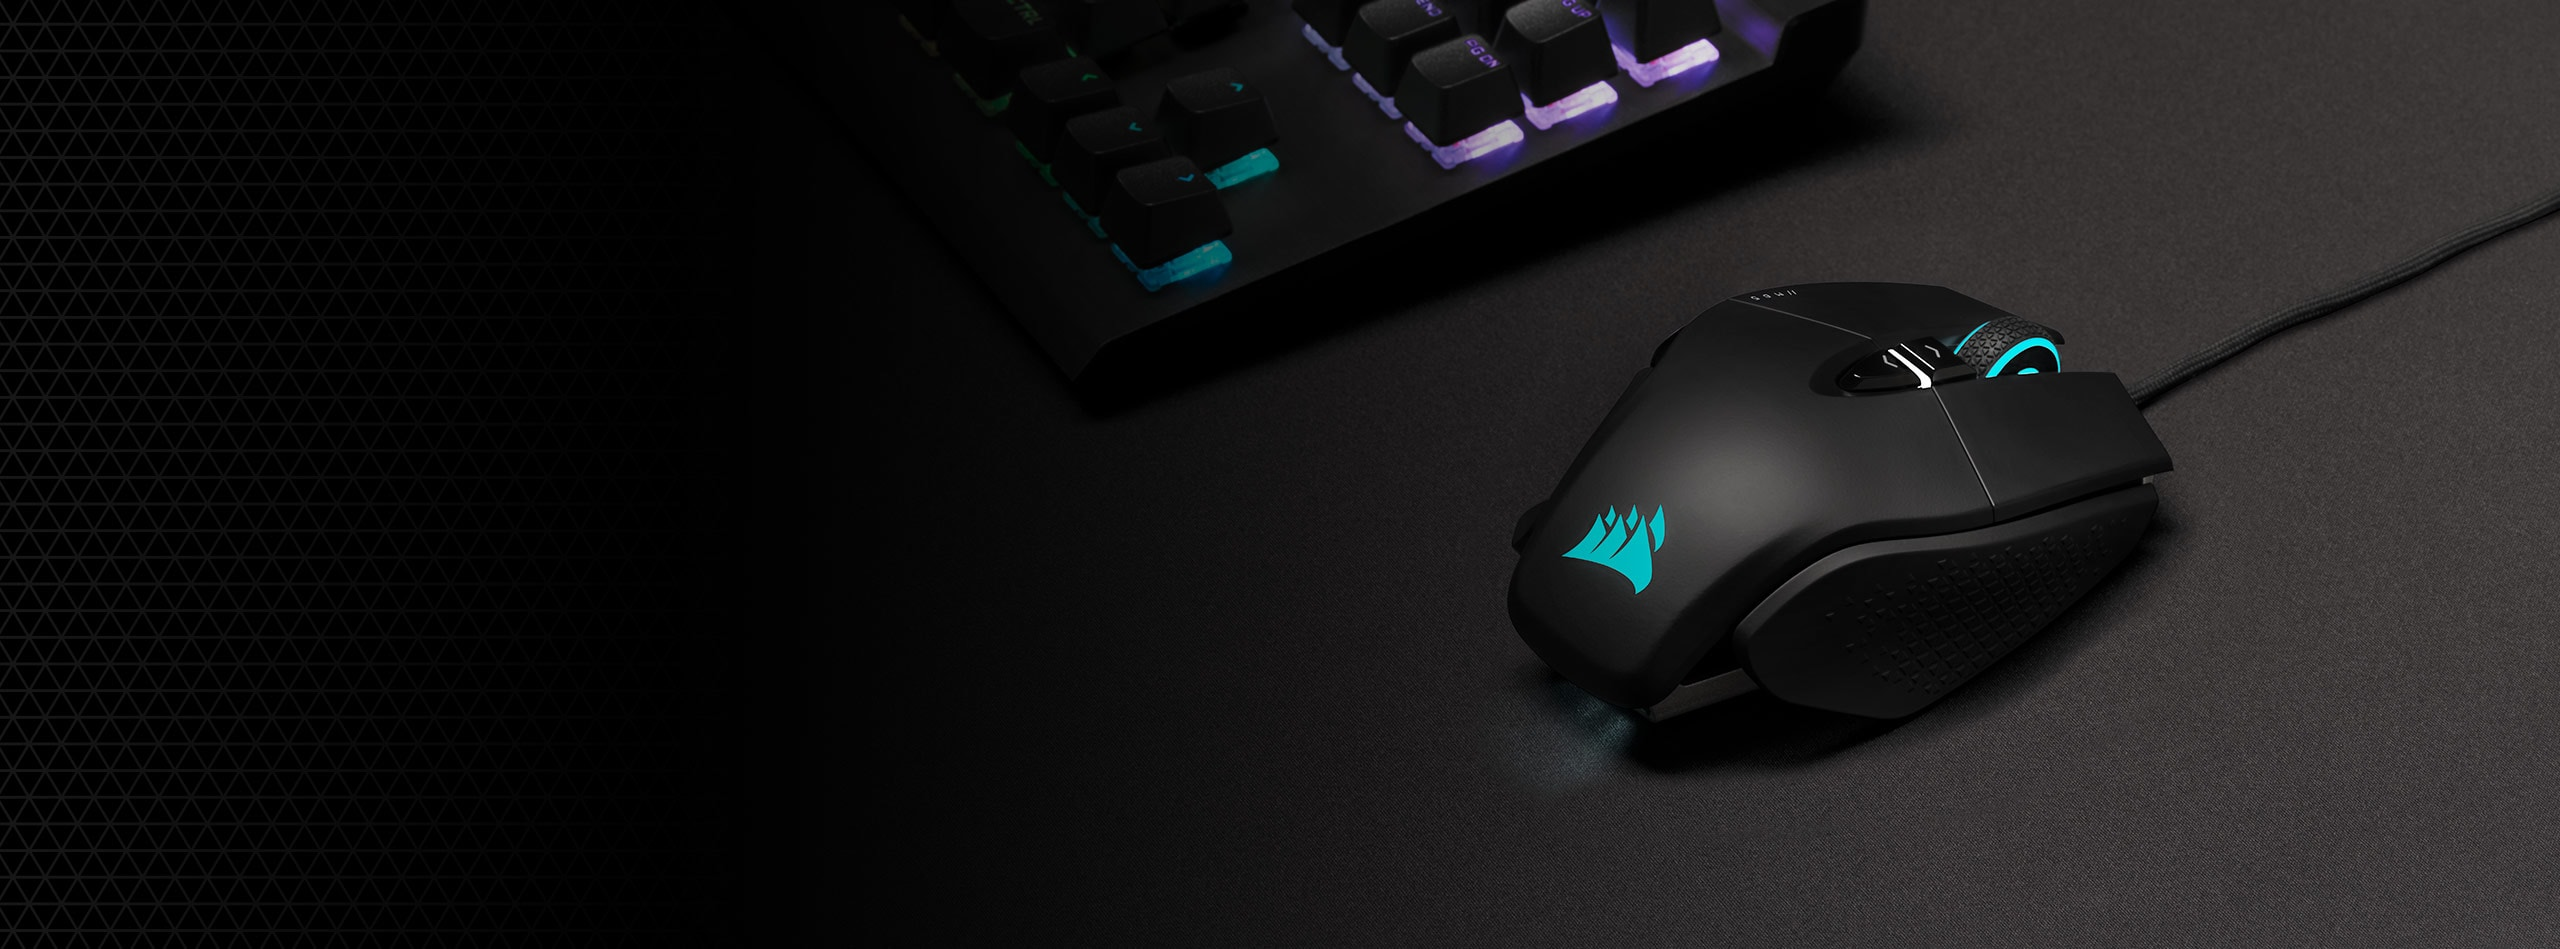 CORSAIR M65 RGB ULTRA Tunable Gaming Mouse